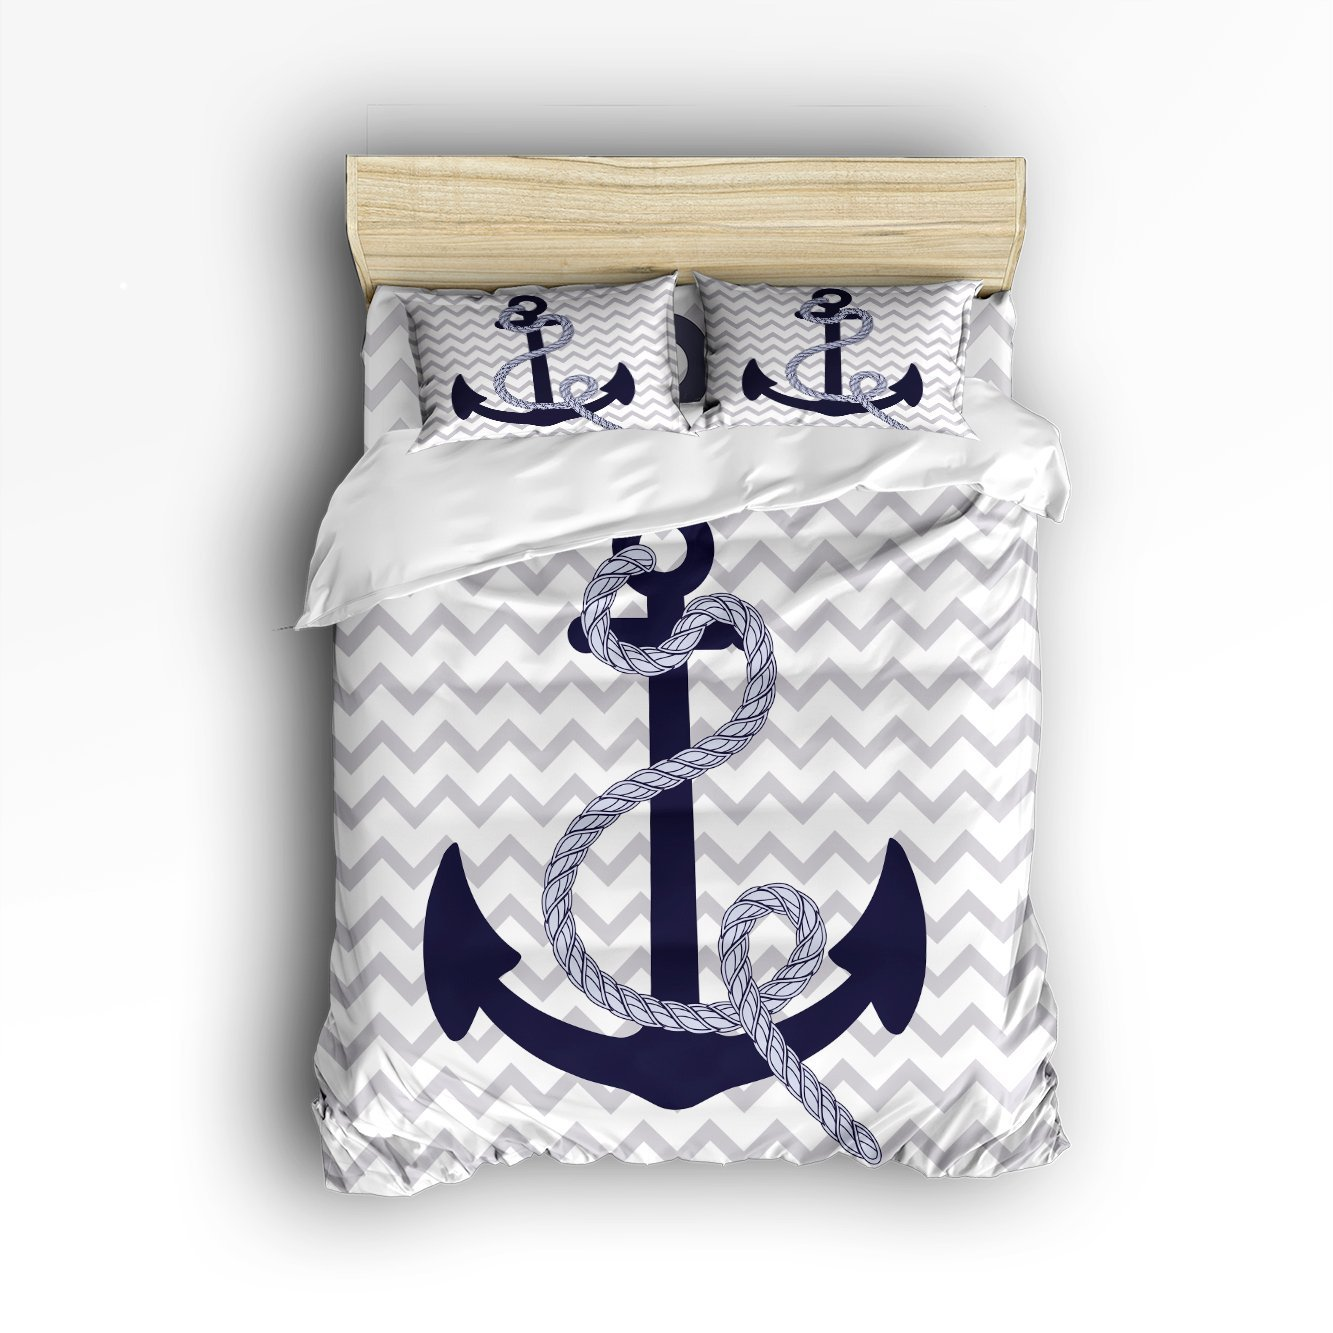 4 Piece Bed Sheets Set, Navy Nautical Anchor with Grey <font><b>White</b></font> Zig Zag <font><b>Chevron</b></font> Pattern